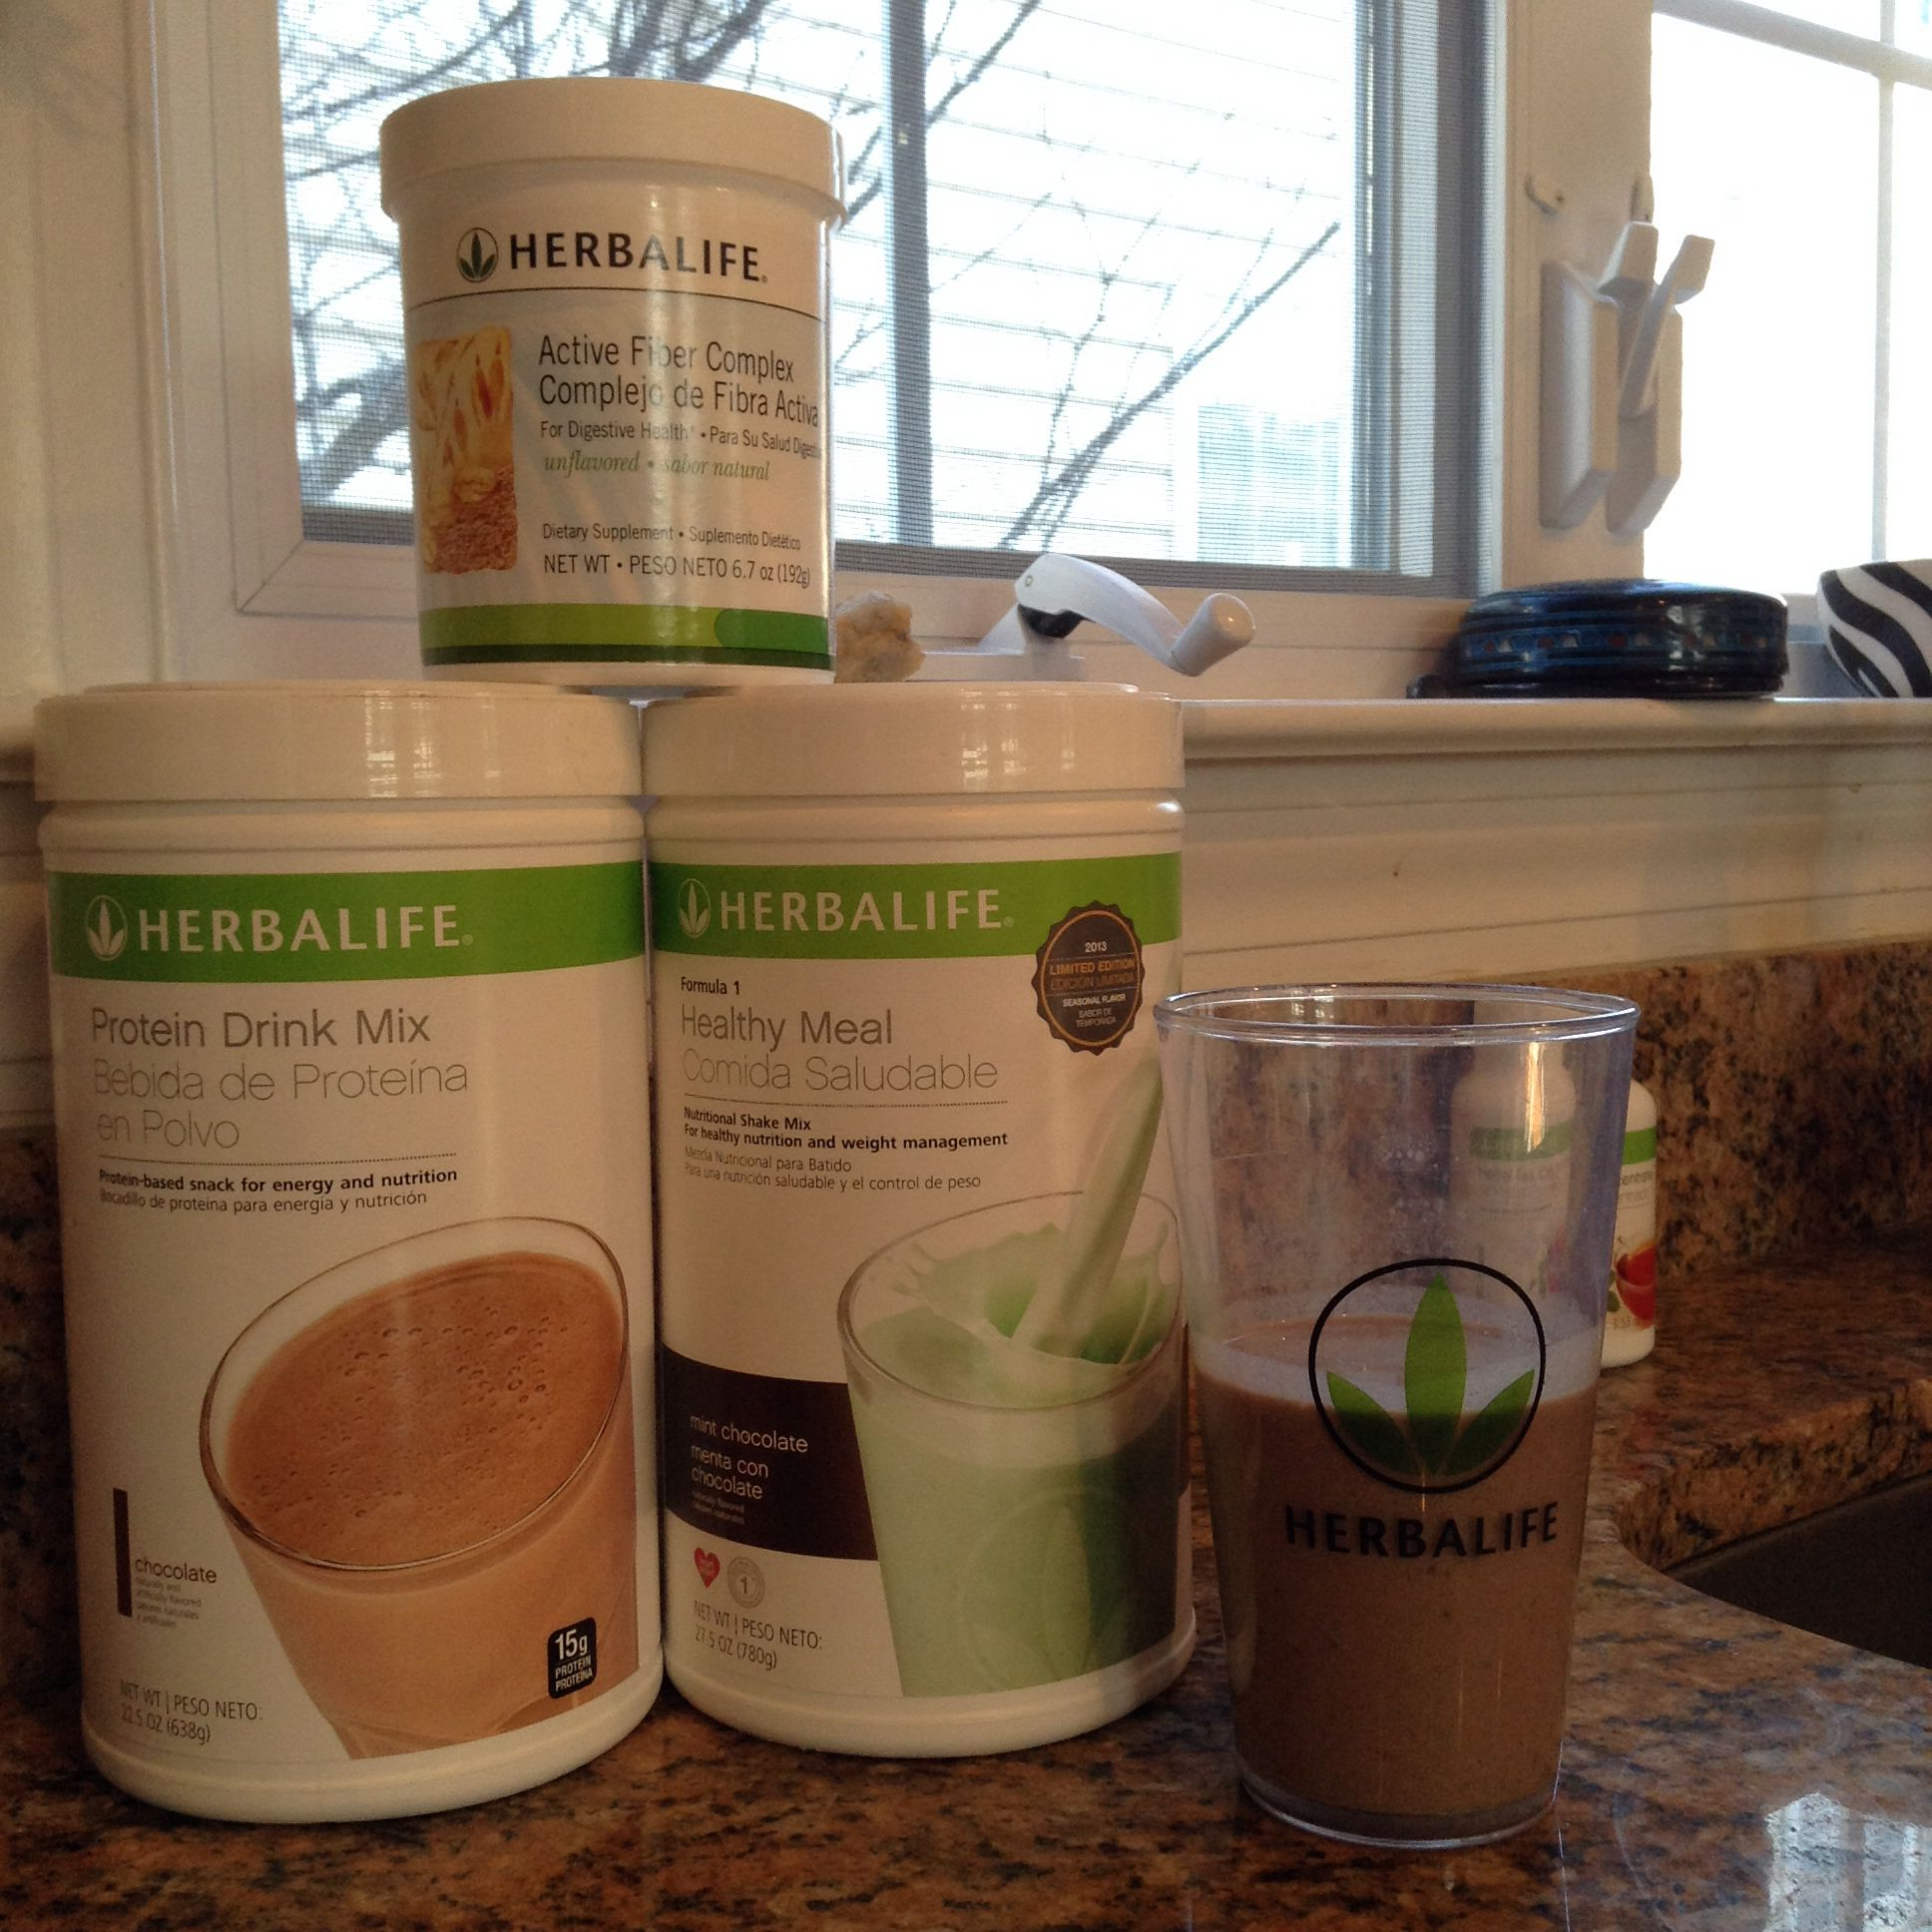 Today's Breakfast.  Mint Chocolate meal replacement shake 23 grams of protein & 8 grams of fiber.   This really did taste great!